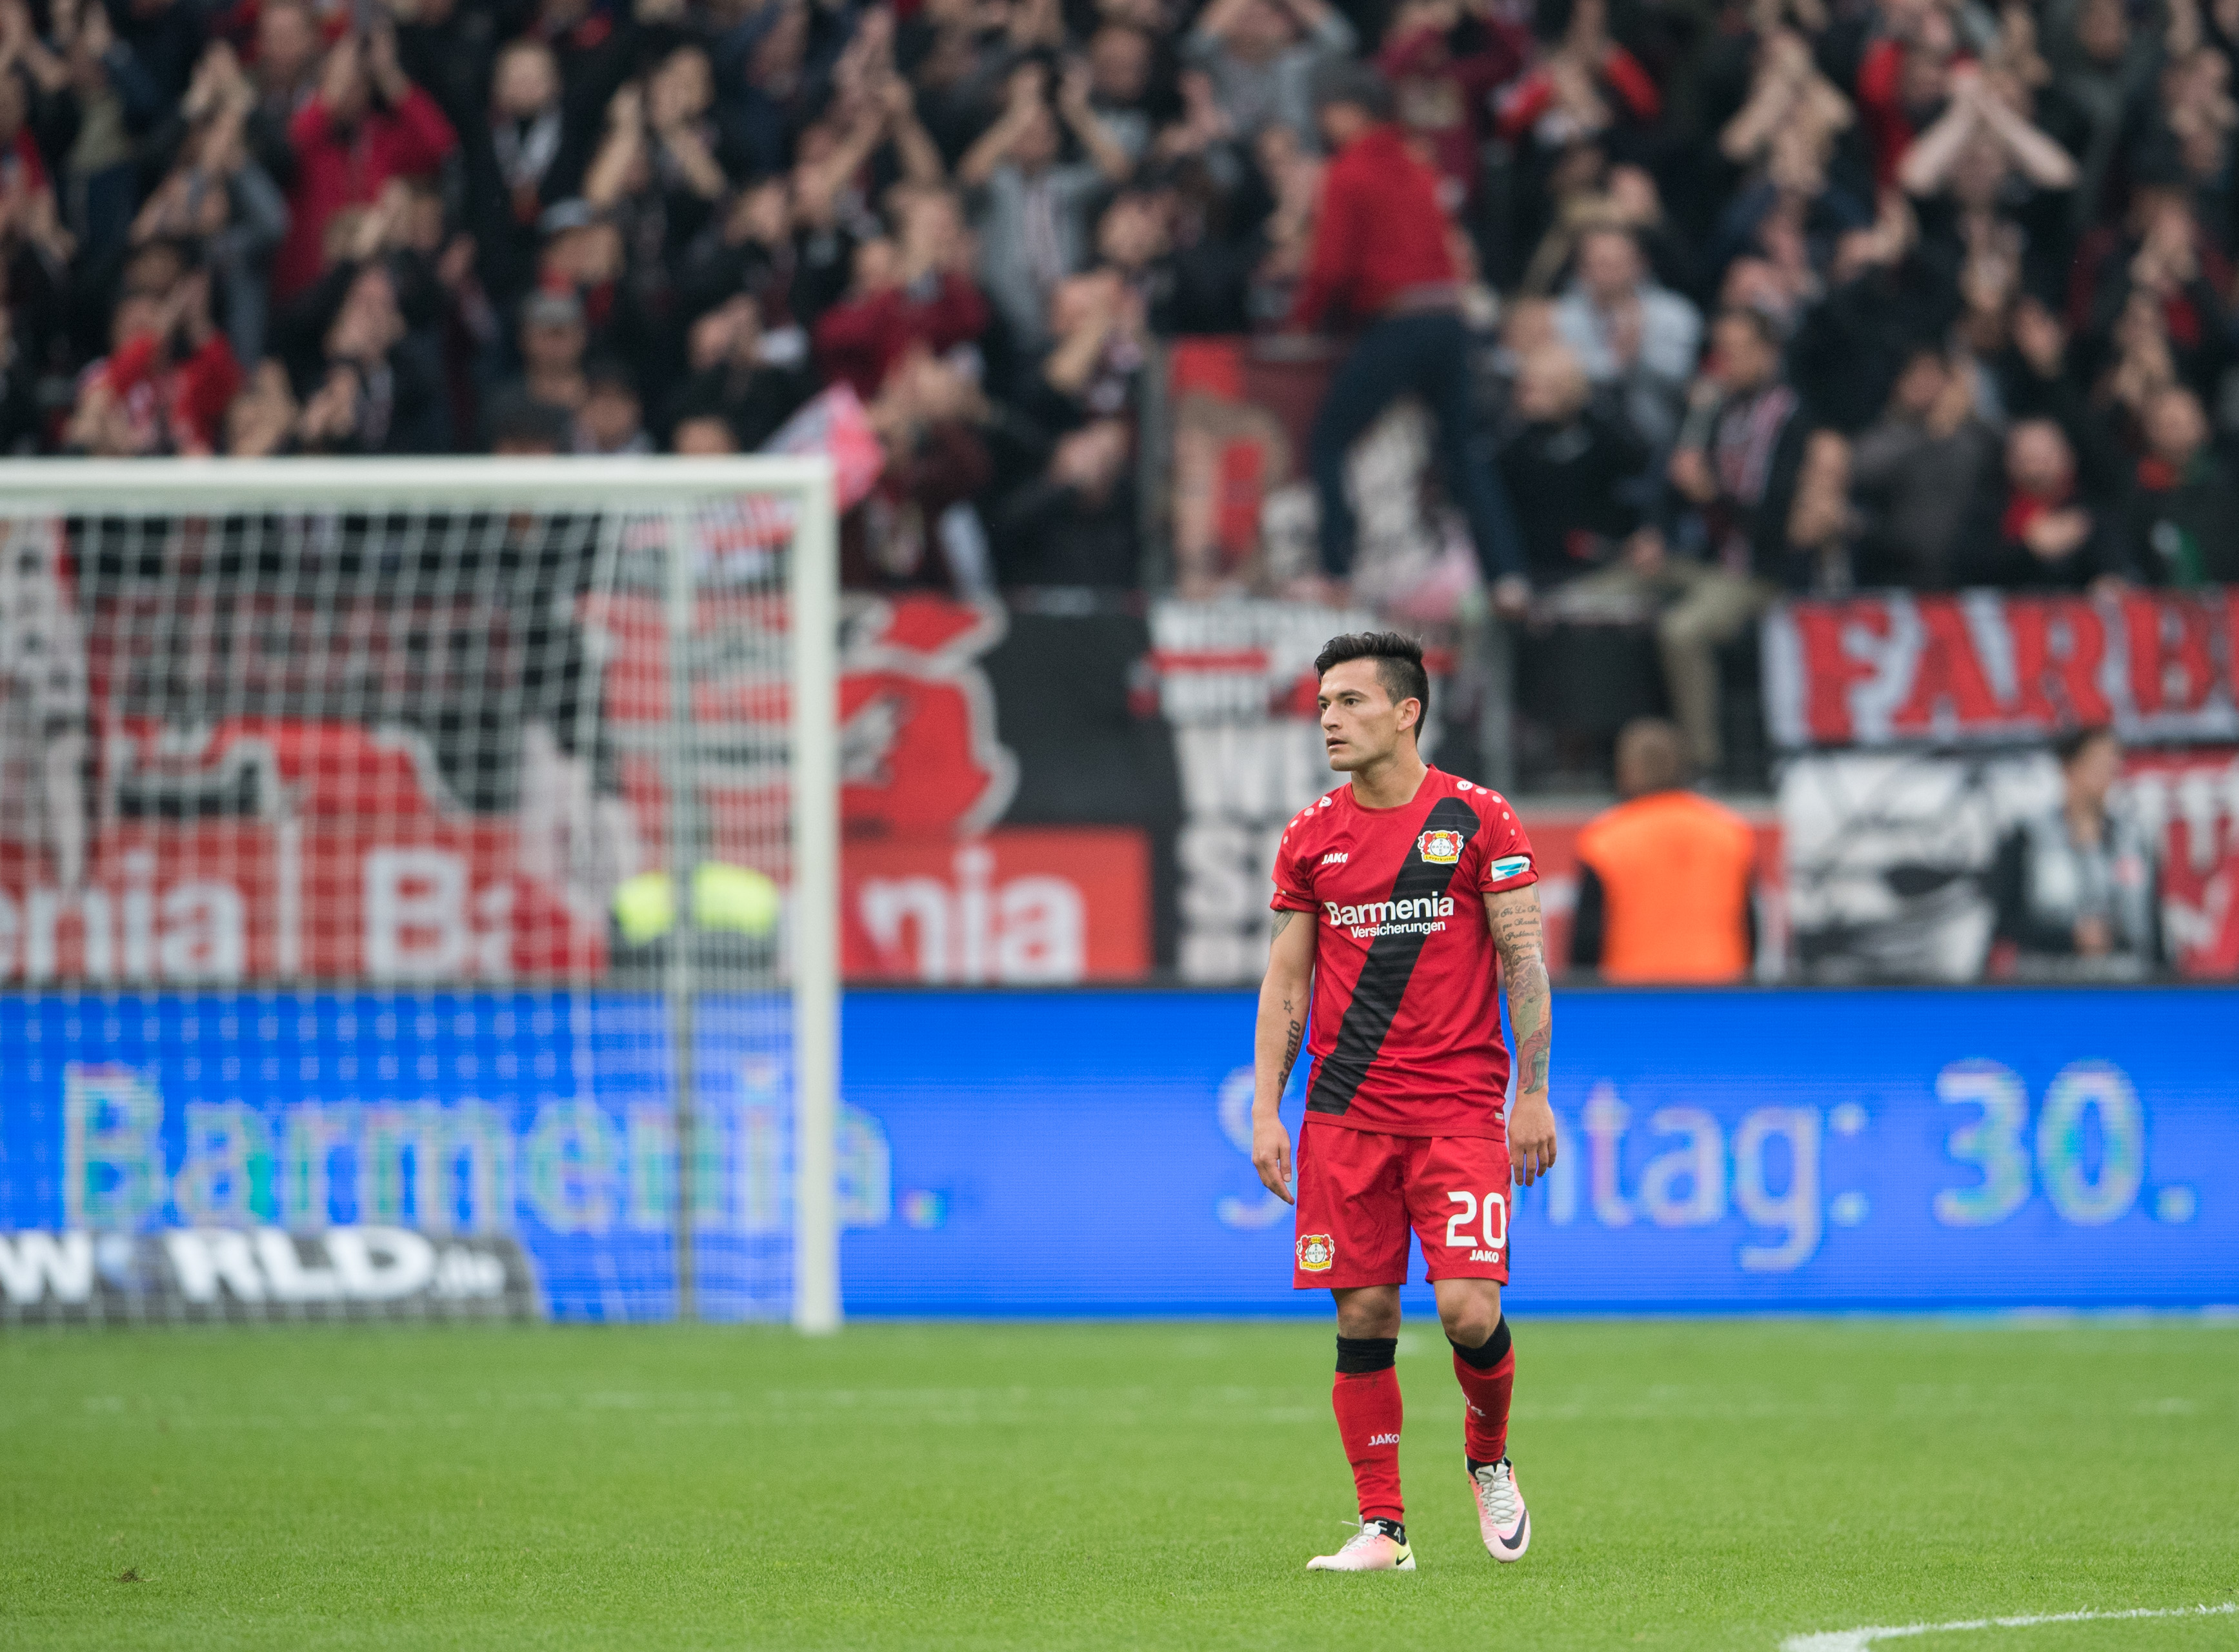 Video: Sportfreunde Lotte vs Bayer Leverkusen